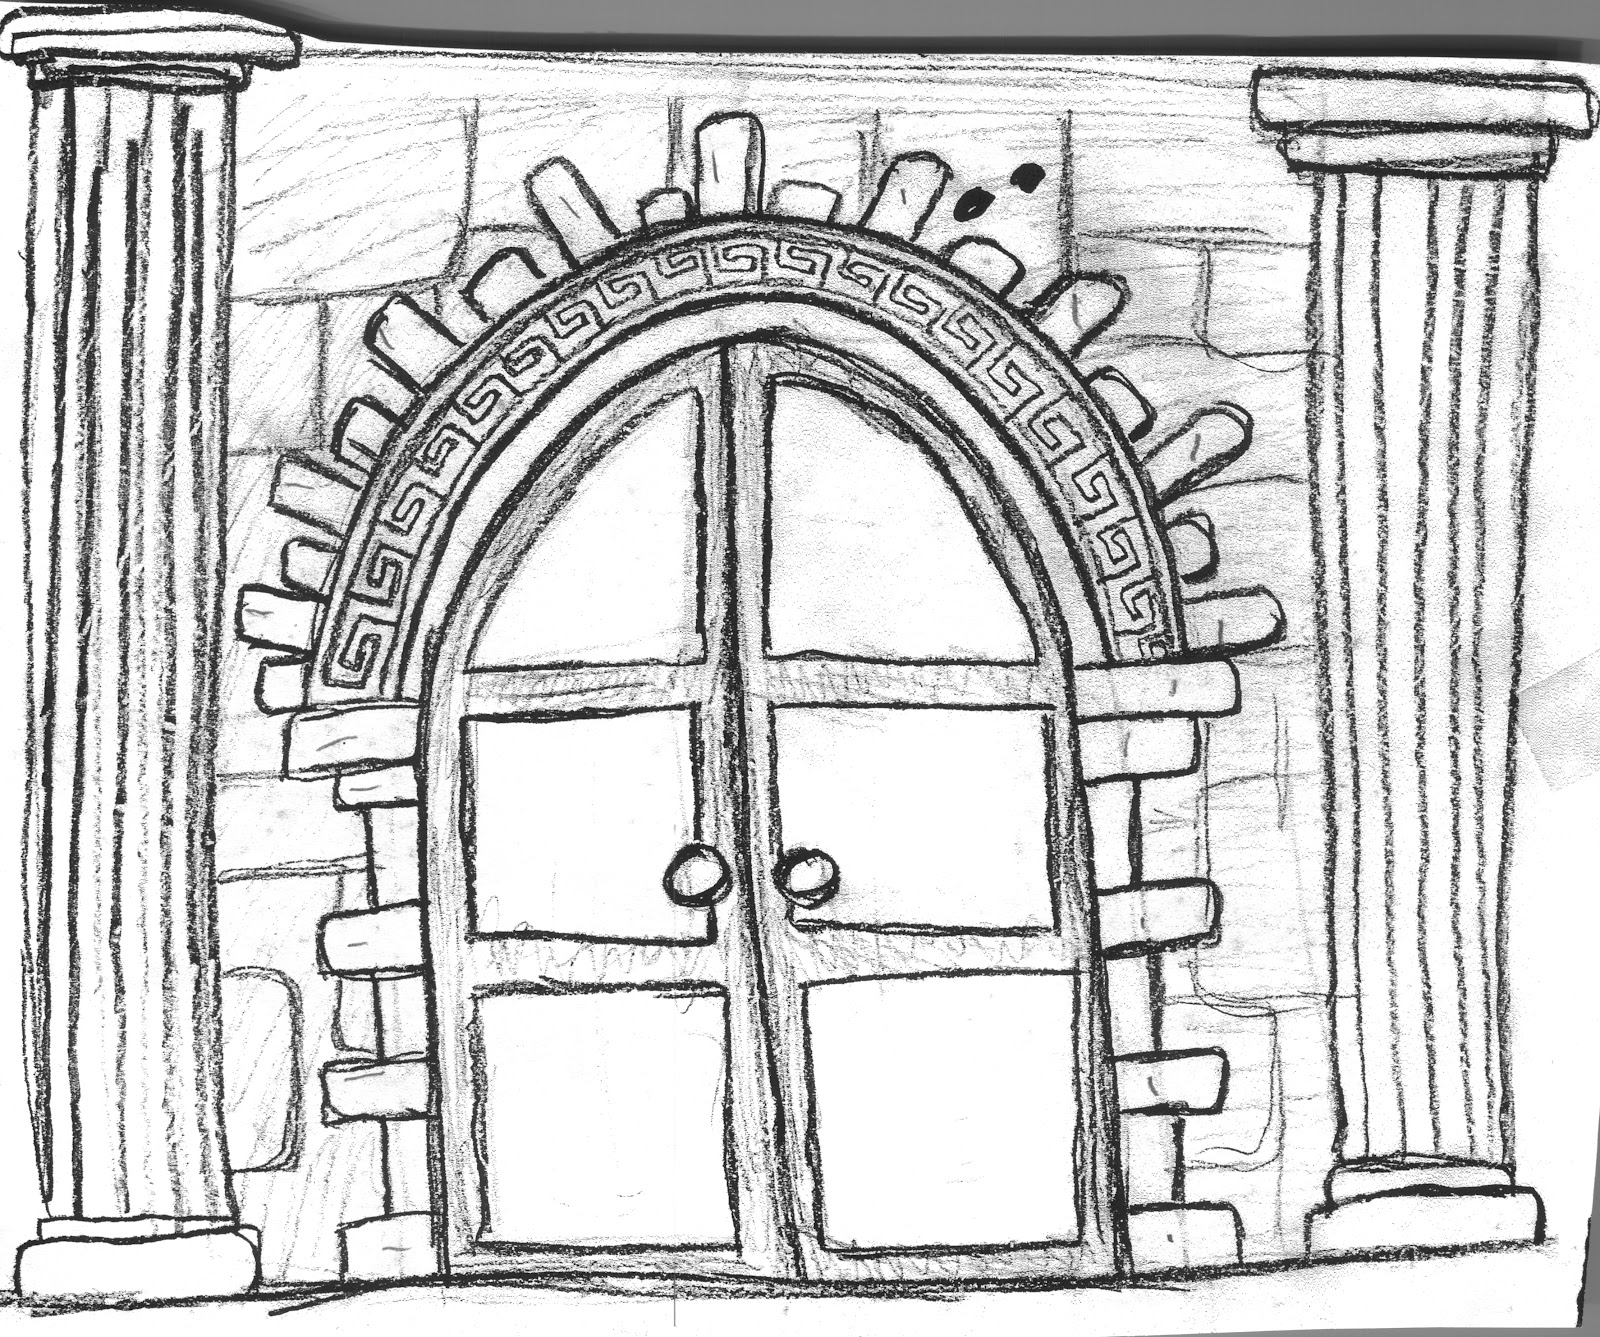 ... Creonu0027s chamber door and the archway exit to the rest of the penthouse. Below are a few of the final drawings that received the most votes.  sc 1 st  WGHS DRAMA Past Shows 2006-2013 - Blogger & WGHS DRAMA Past Shows 2006-2013: Spring Play 2009 -